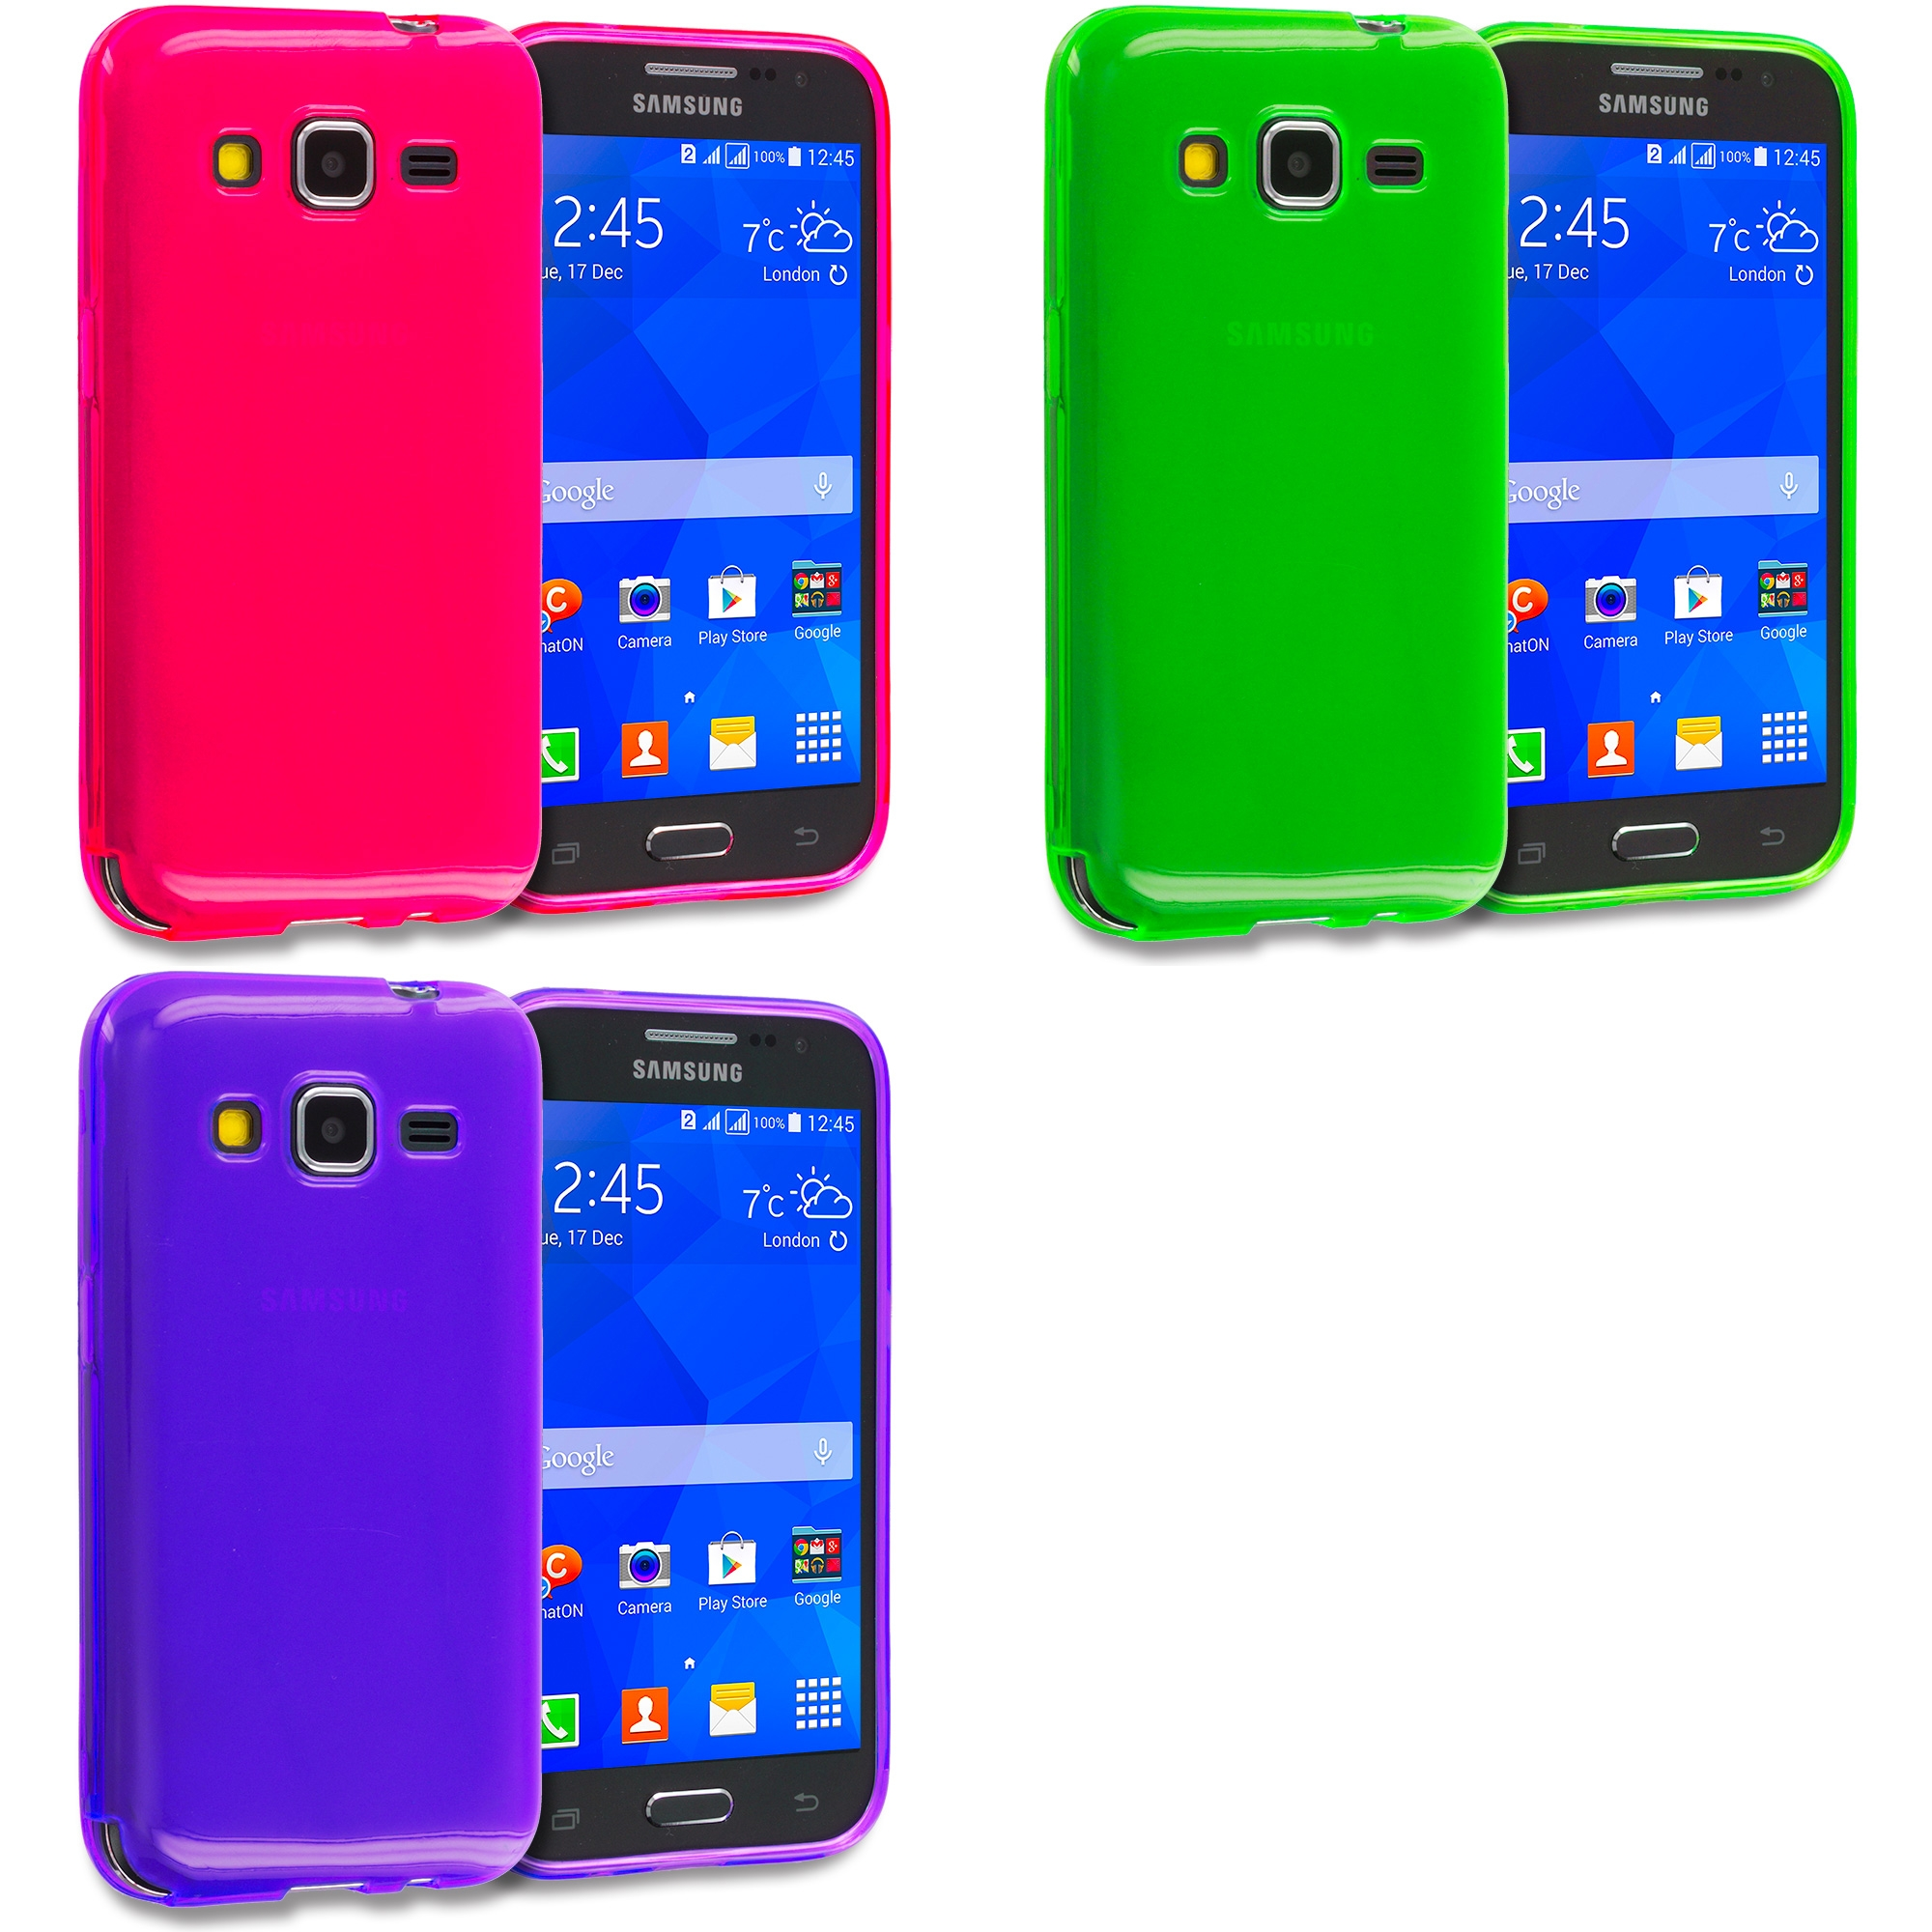 Samsung Galaxy Prevail LTE Core Prime G360P Combo Pack : Hot Pink TPU Rubber Skin Case Cover